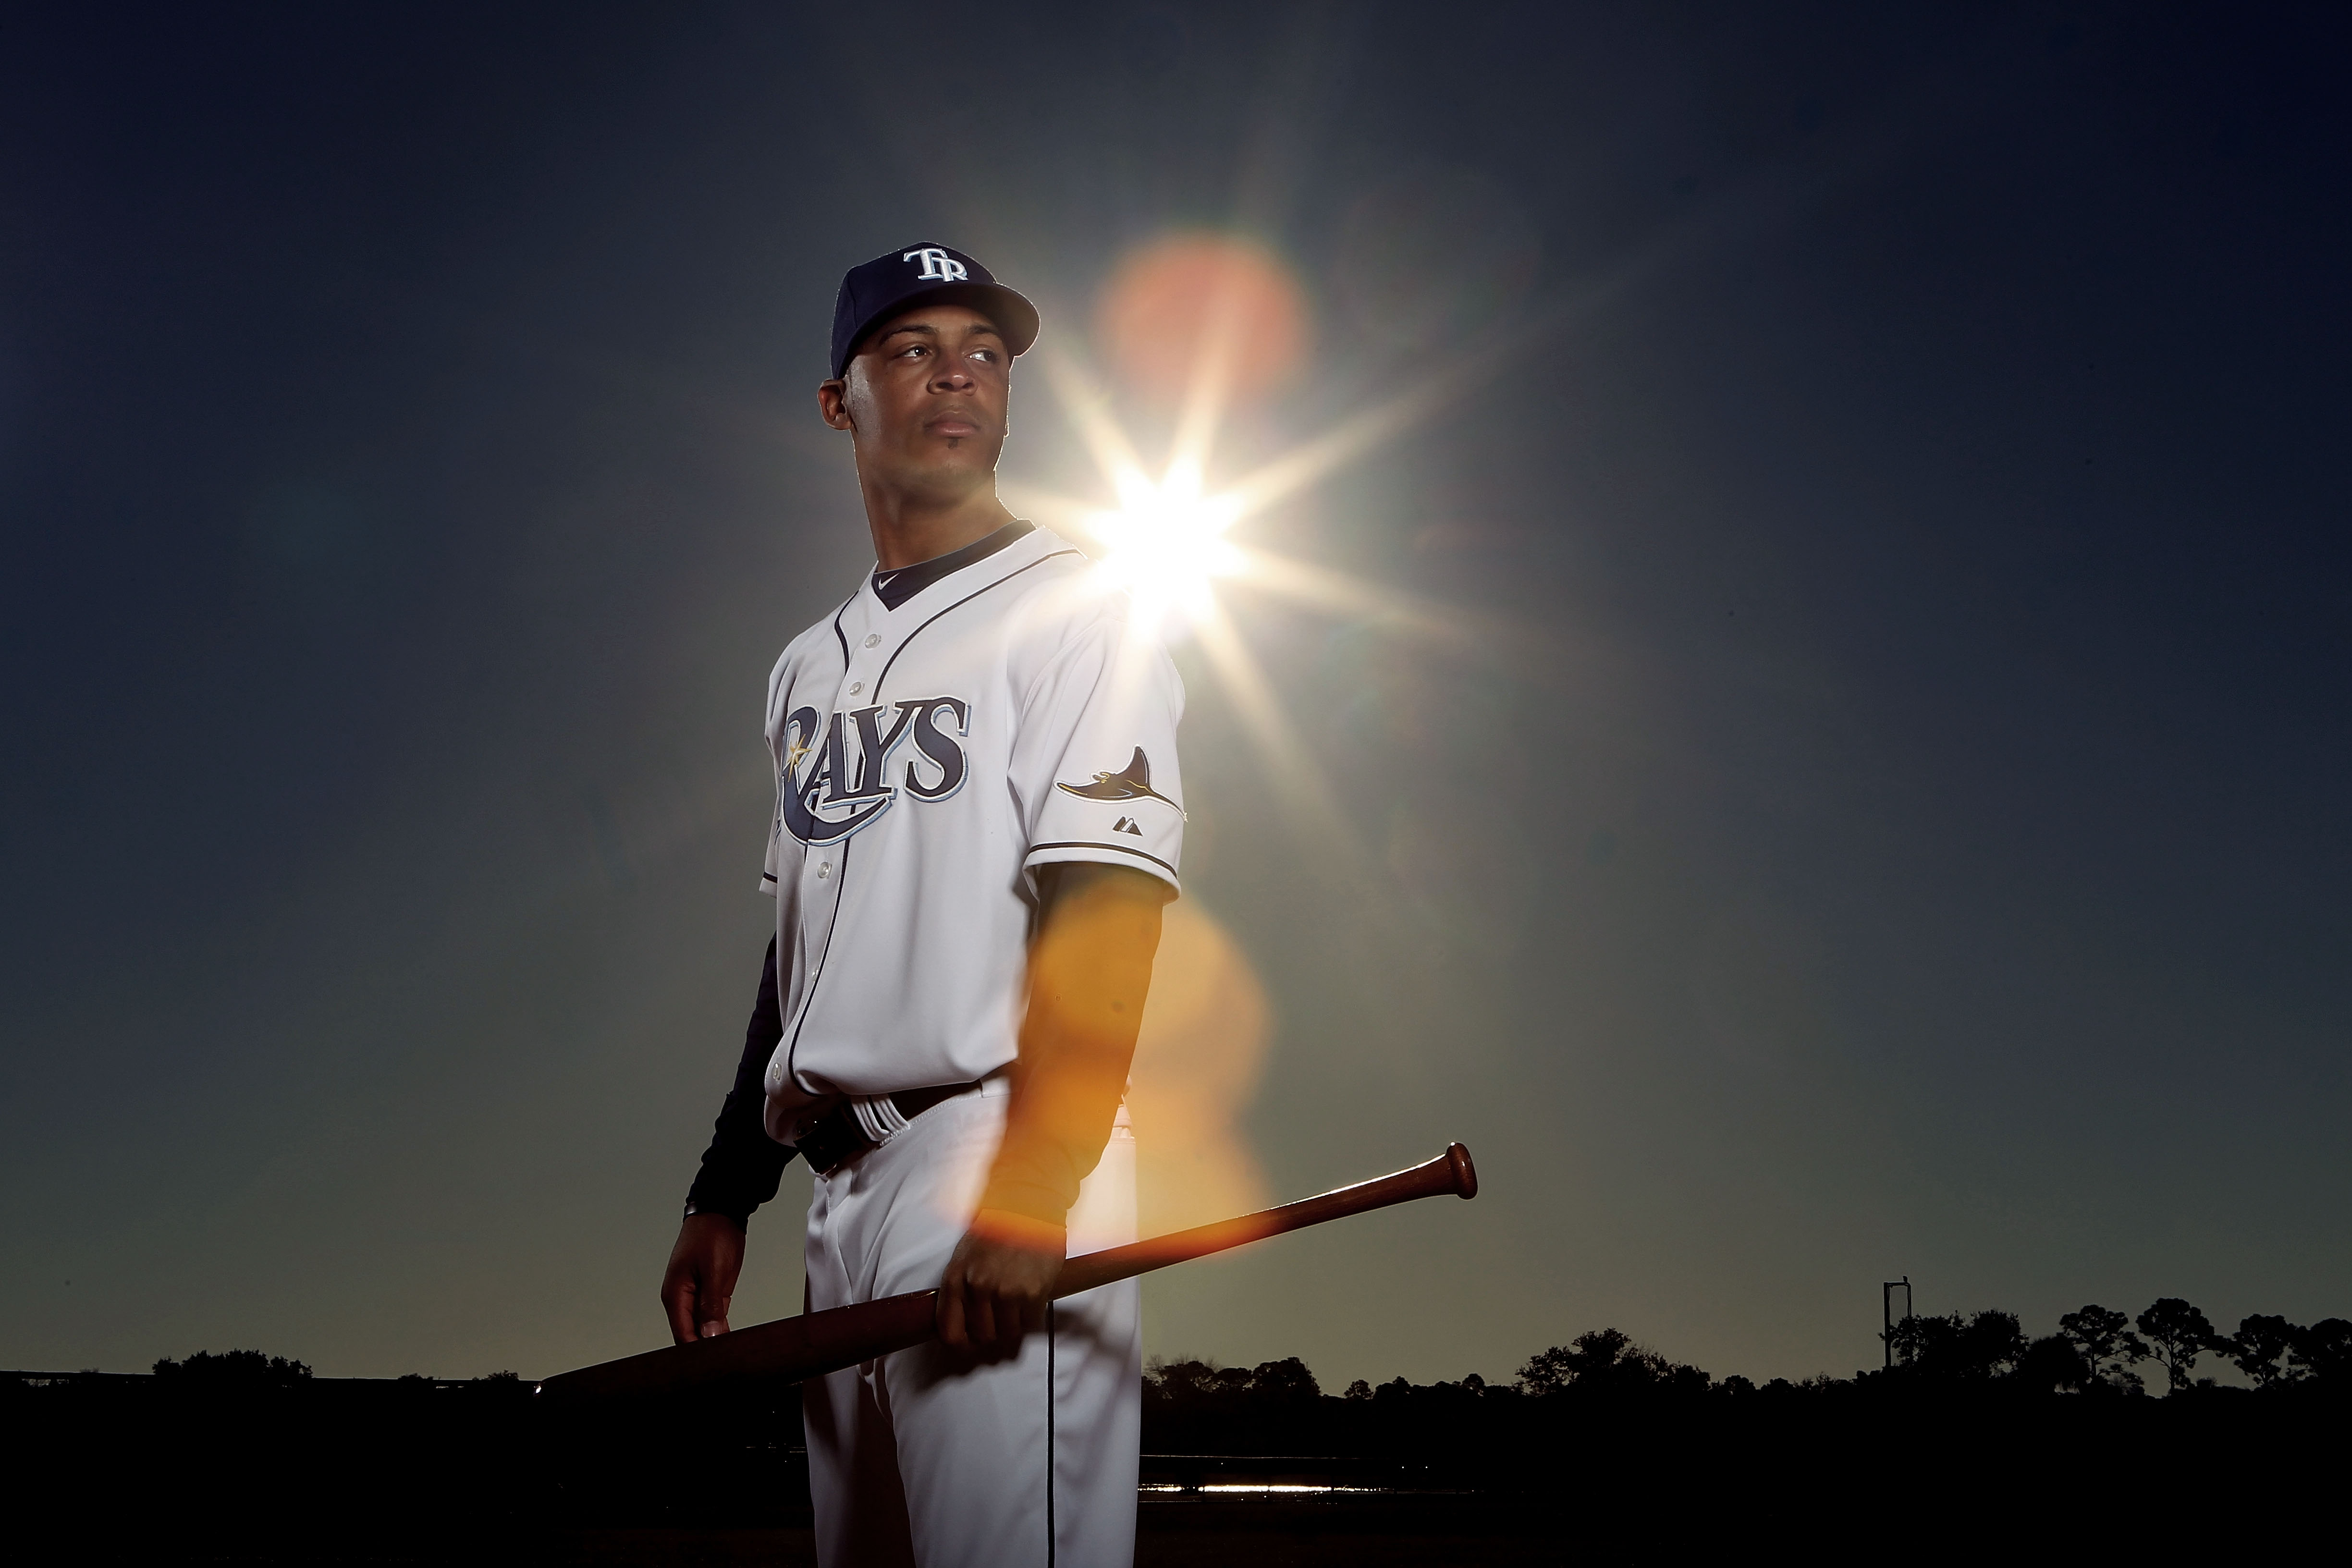 PORT CHARLOTTE, FL - FEBRUARY 26:  (EDITOR'S NOTE: IMAGE HAS BEEN DIGITALLY DESATURATED) Desmond Jennings #27 of the Tampa Bay Rays poses for a photo during Spring Training Media Photo Day at Charlotte County Sports Park on February 26, 2010 in Port Charl